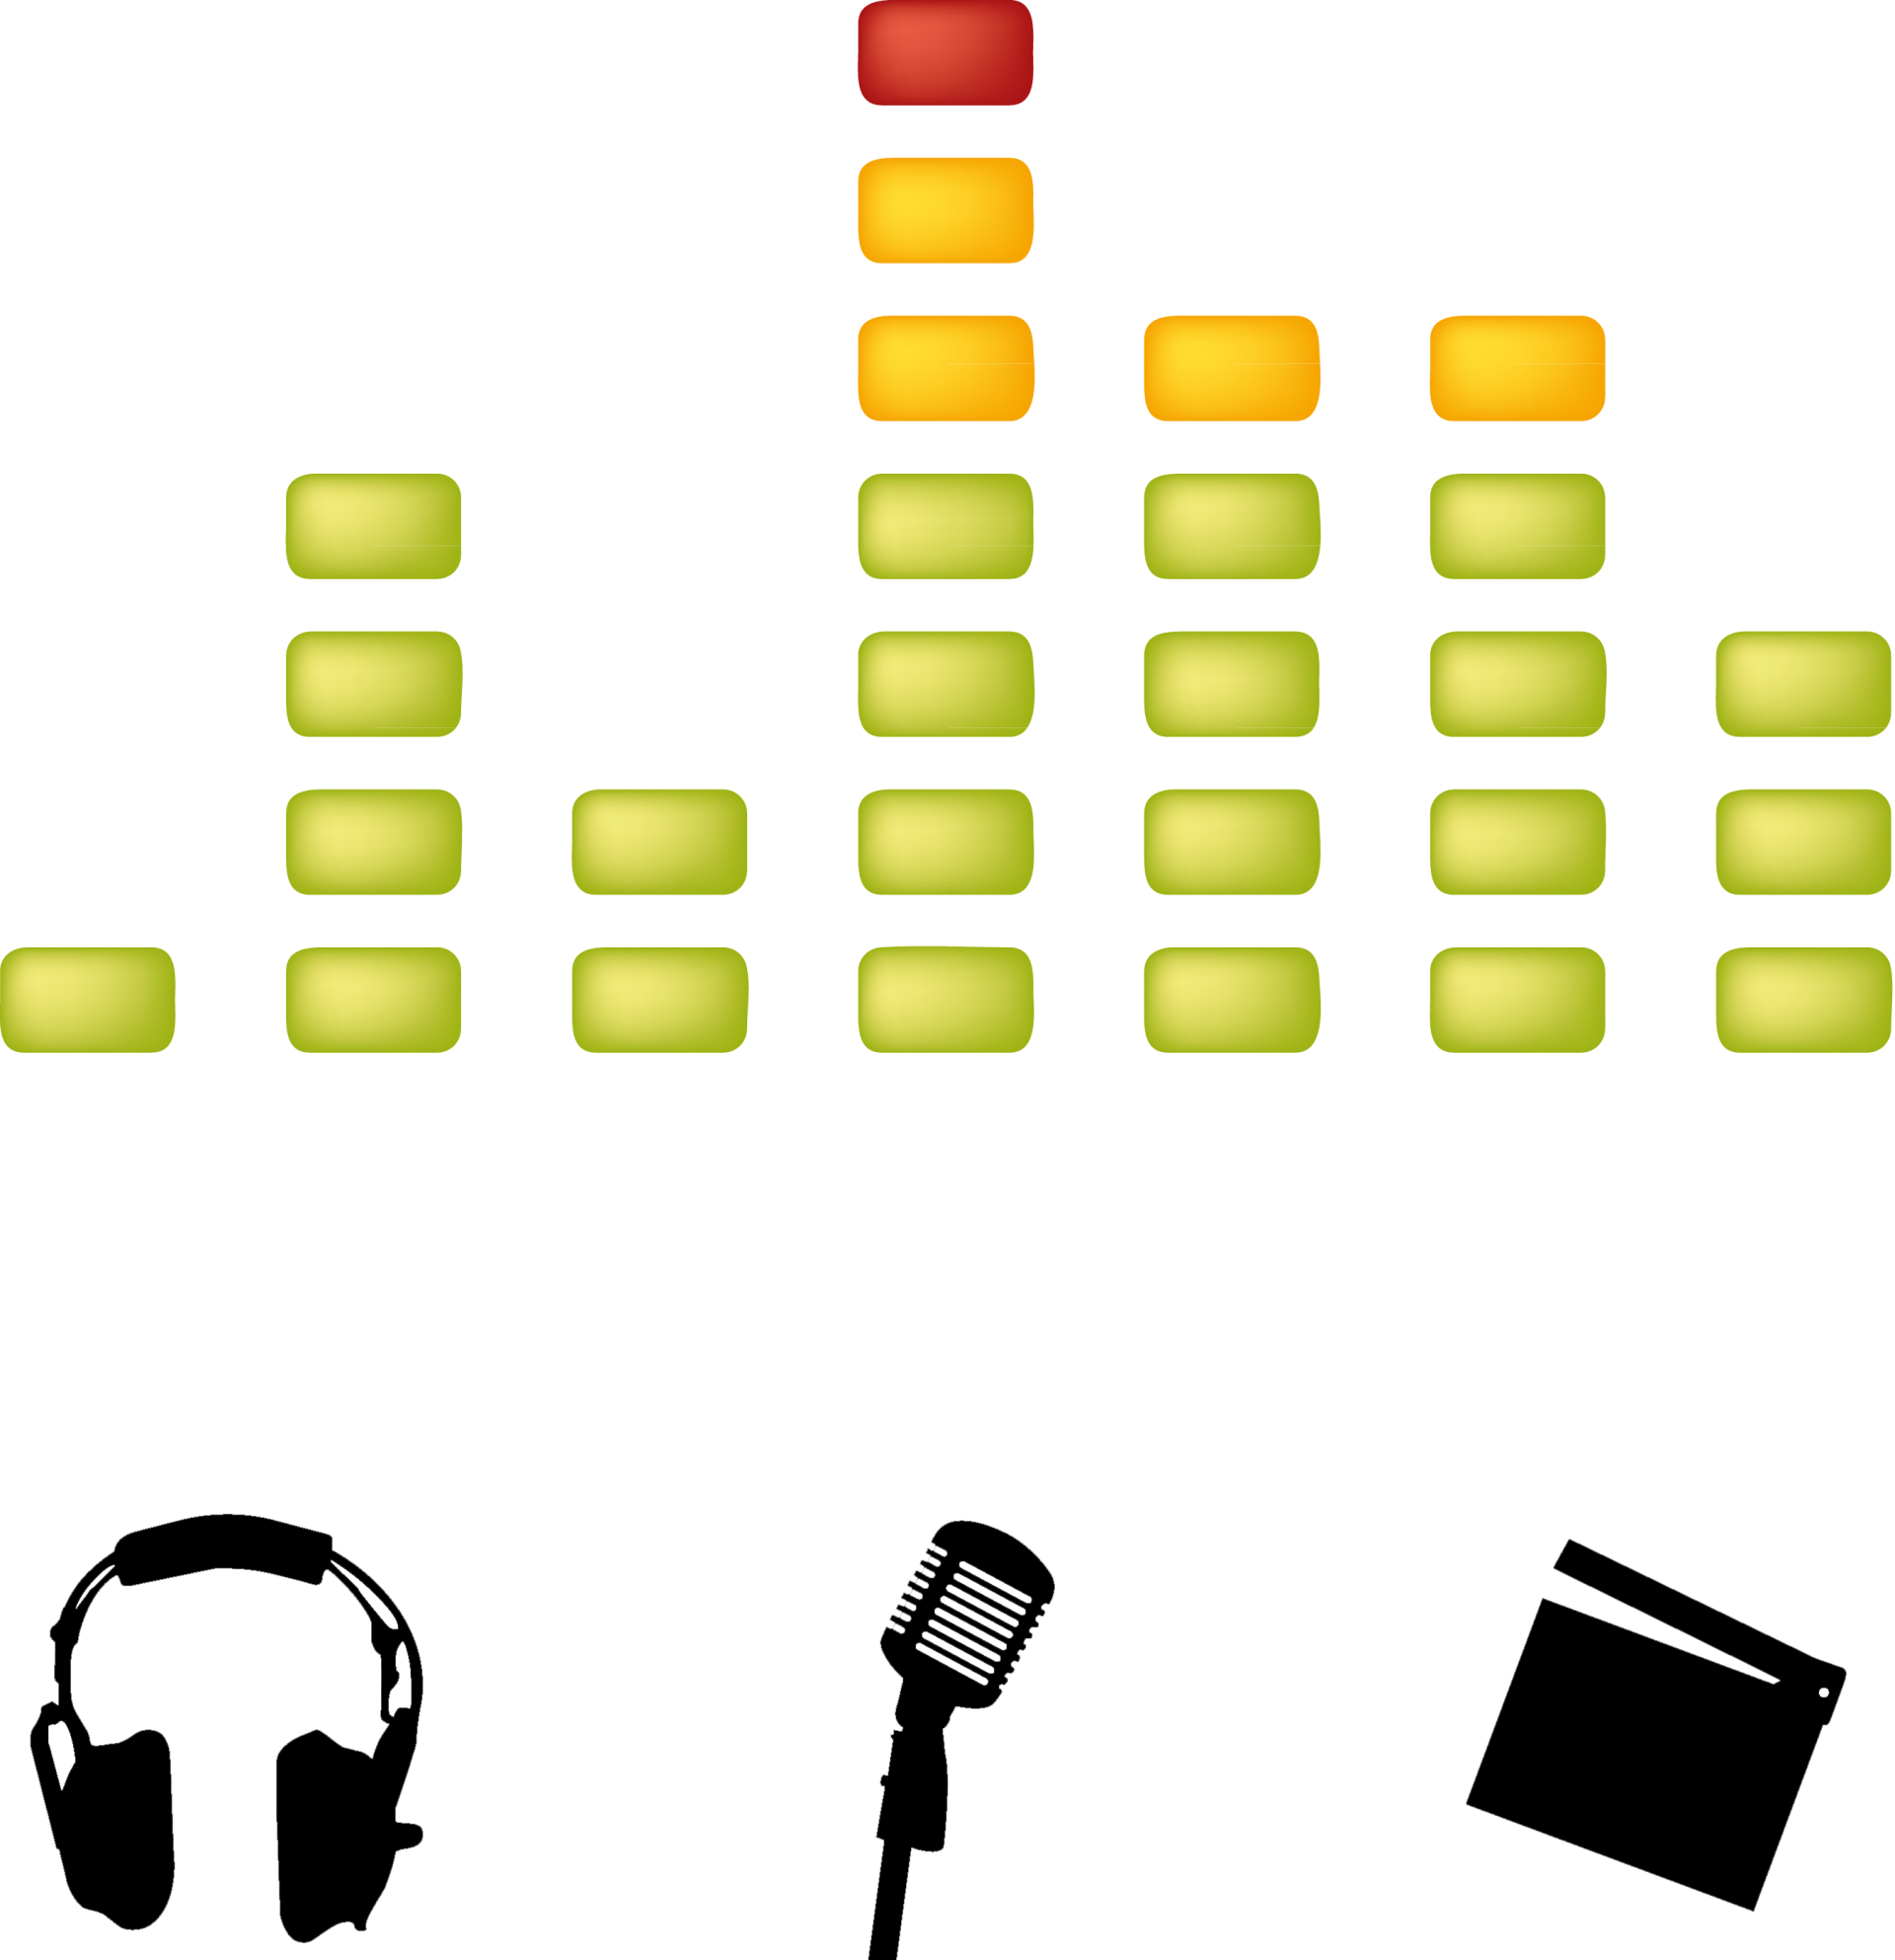 Studio la ré do